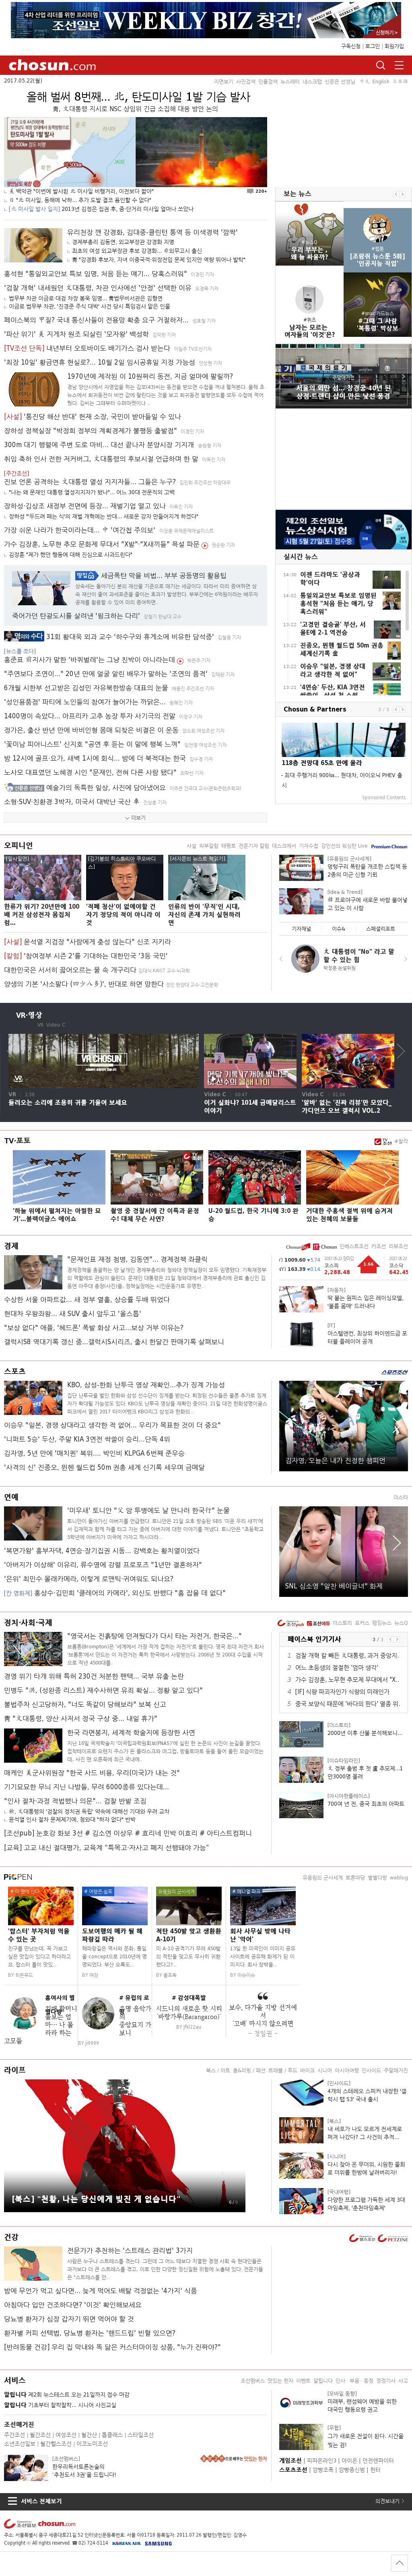 chosun.com at Sunday May 21, 2017, 6:03 p.m. UTC